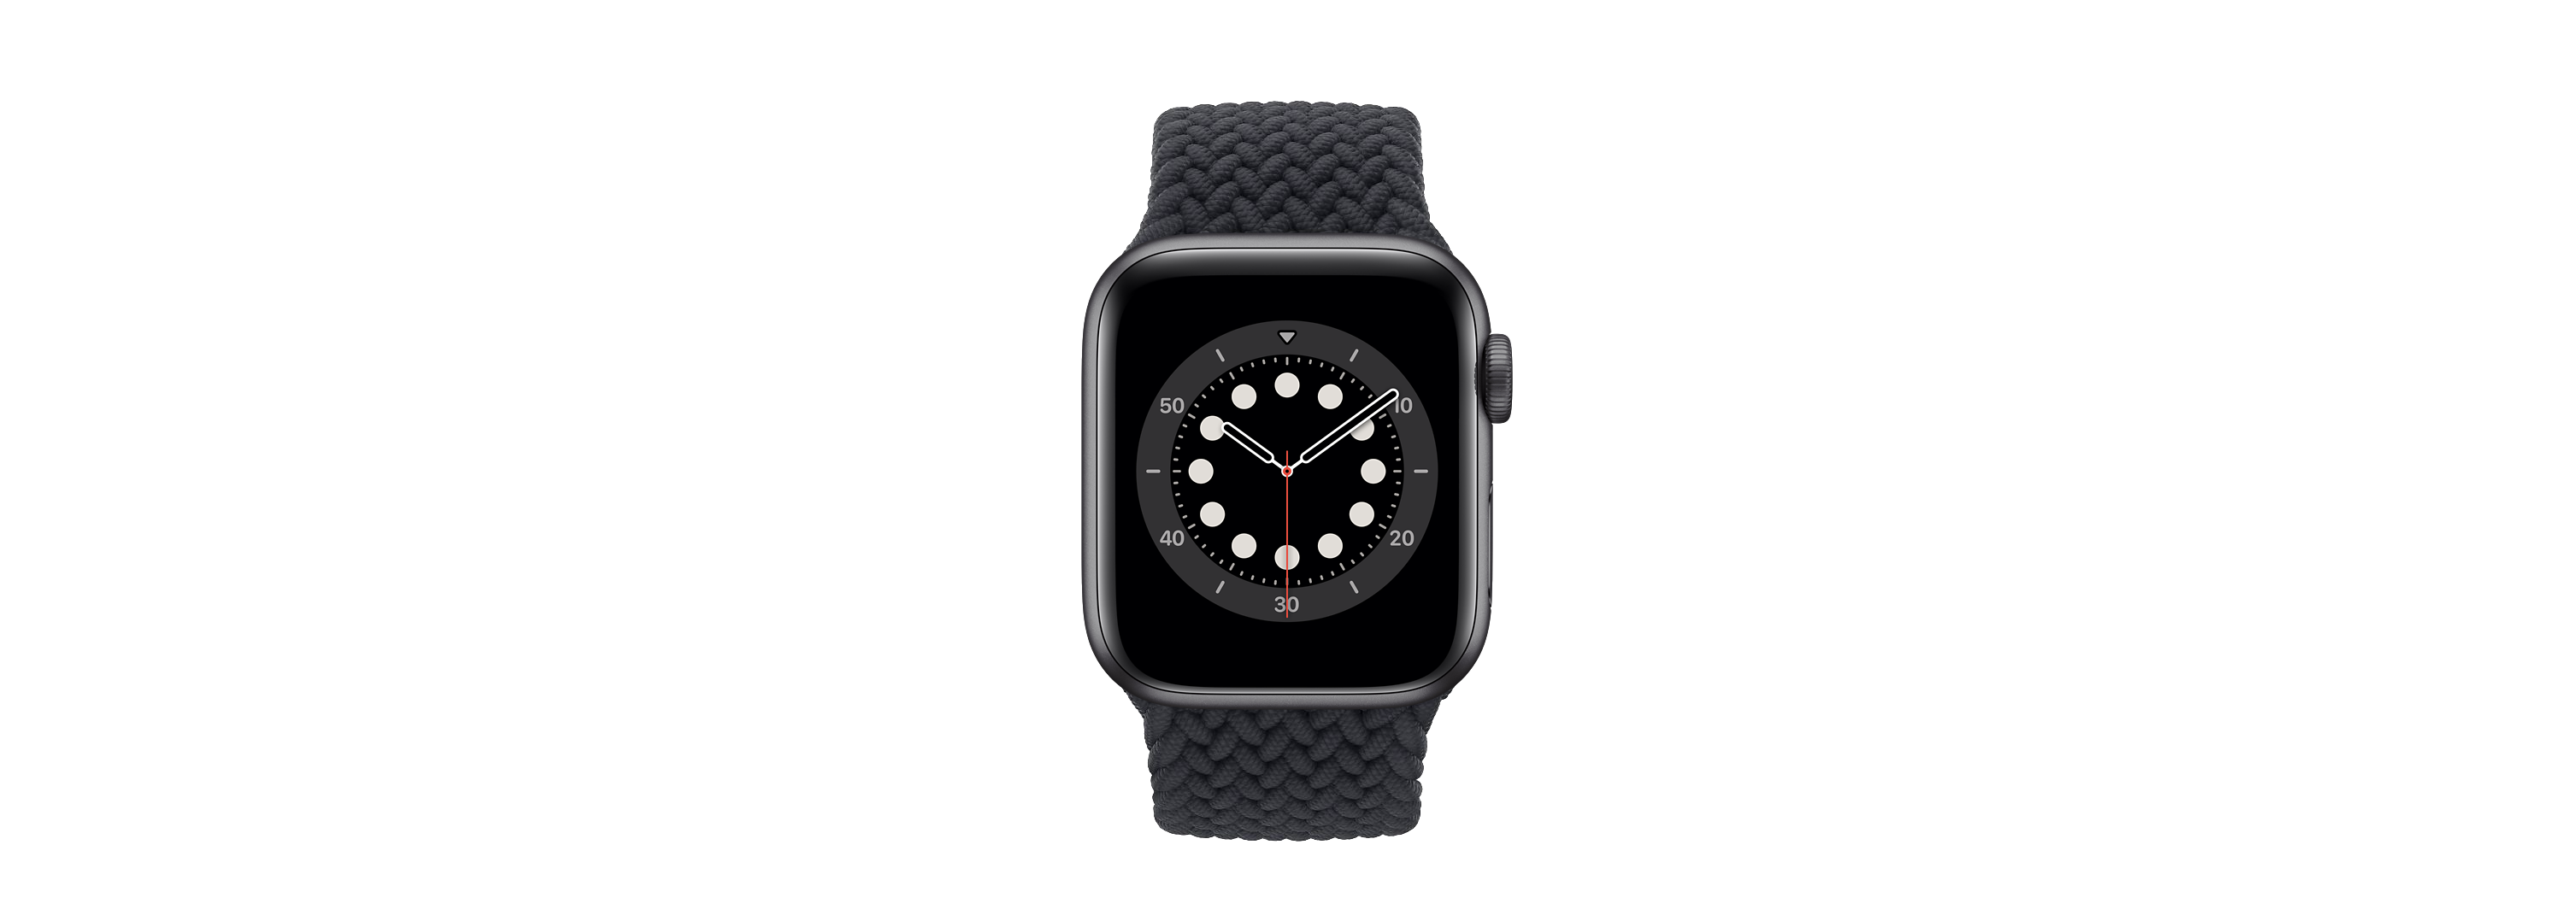 The Apple Watch Series 6